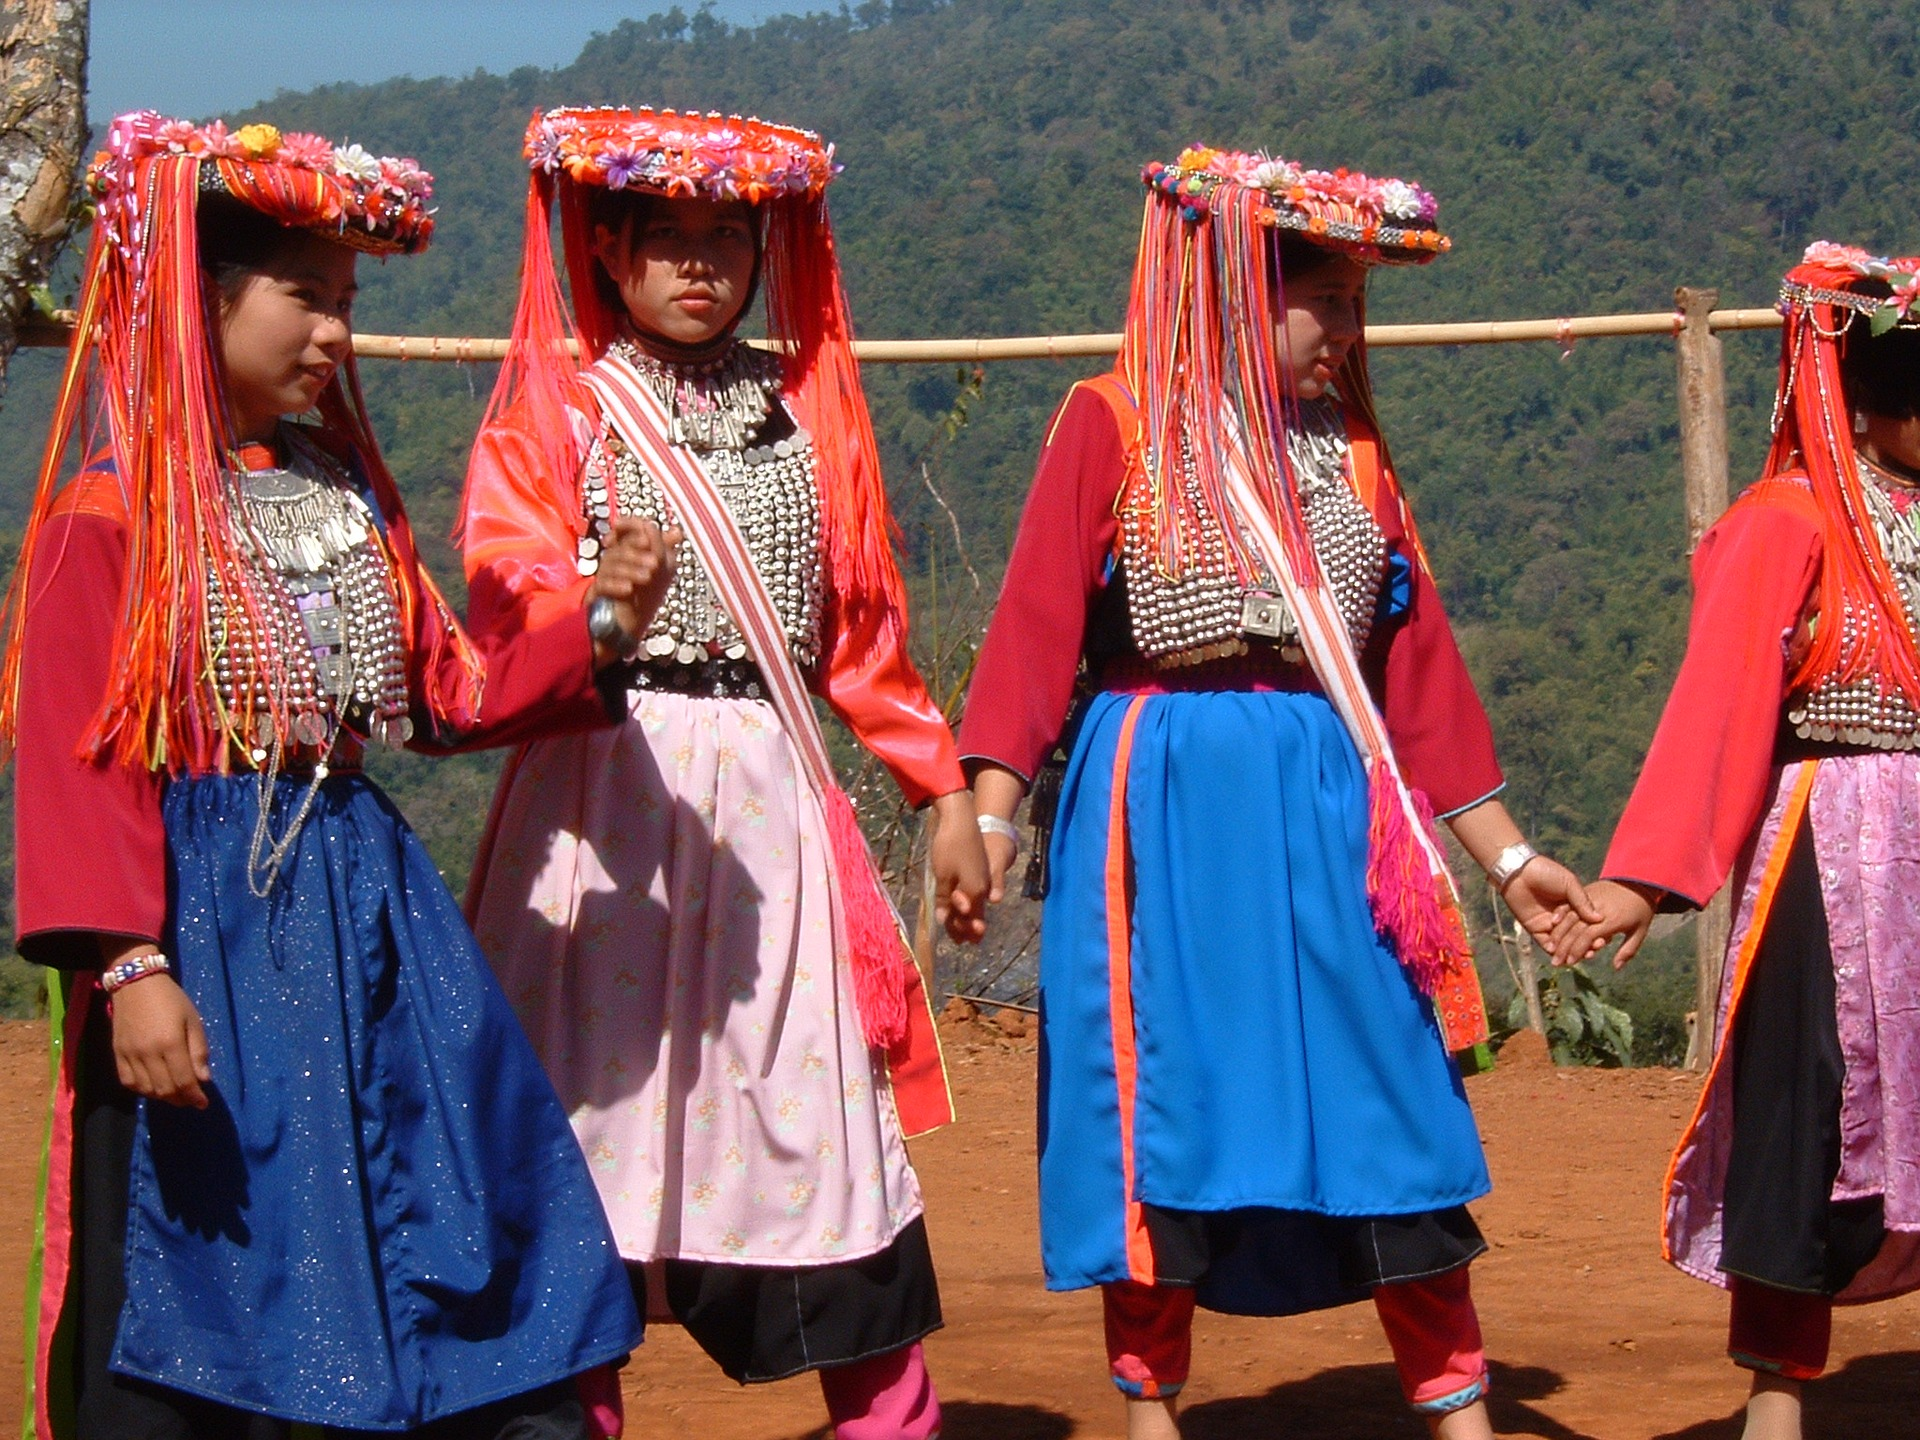 Women of a tribe in traditional dress